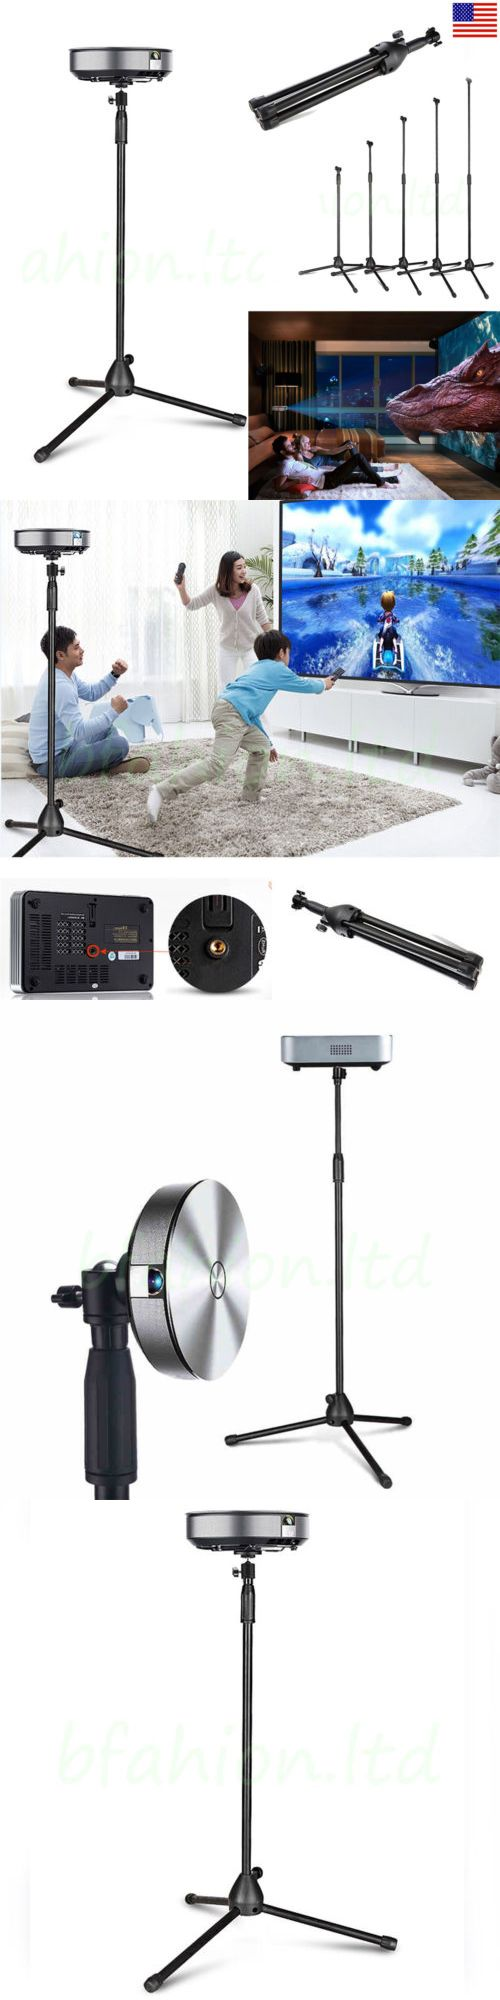 Projector Mounts and Stands: Portable Extendable Tripod Projector Mount Stand Fits All 1/4 Screw Projector BUY IT NOW ONLY: $39.99